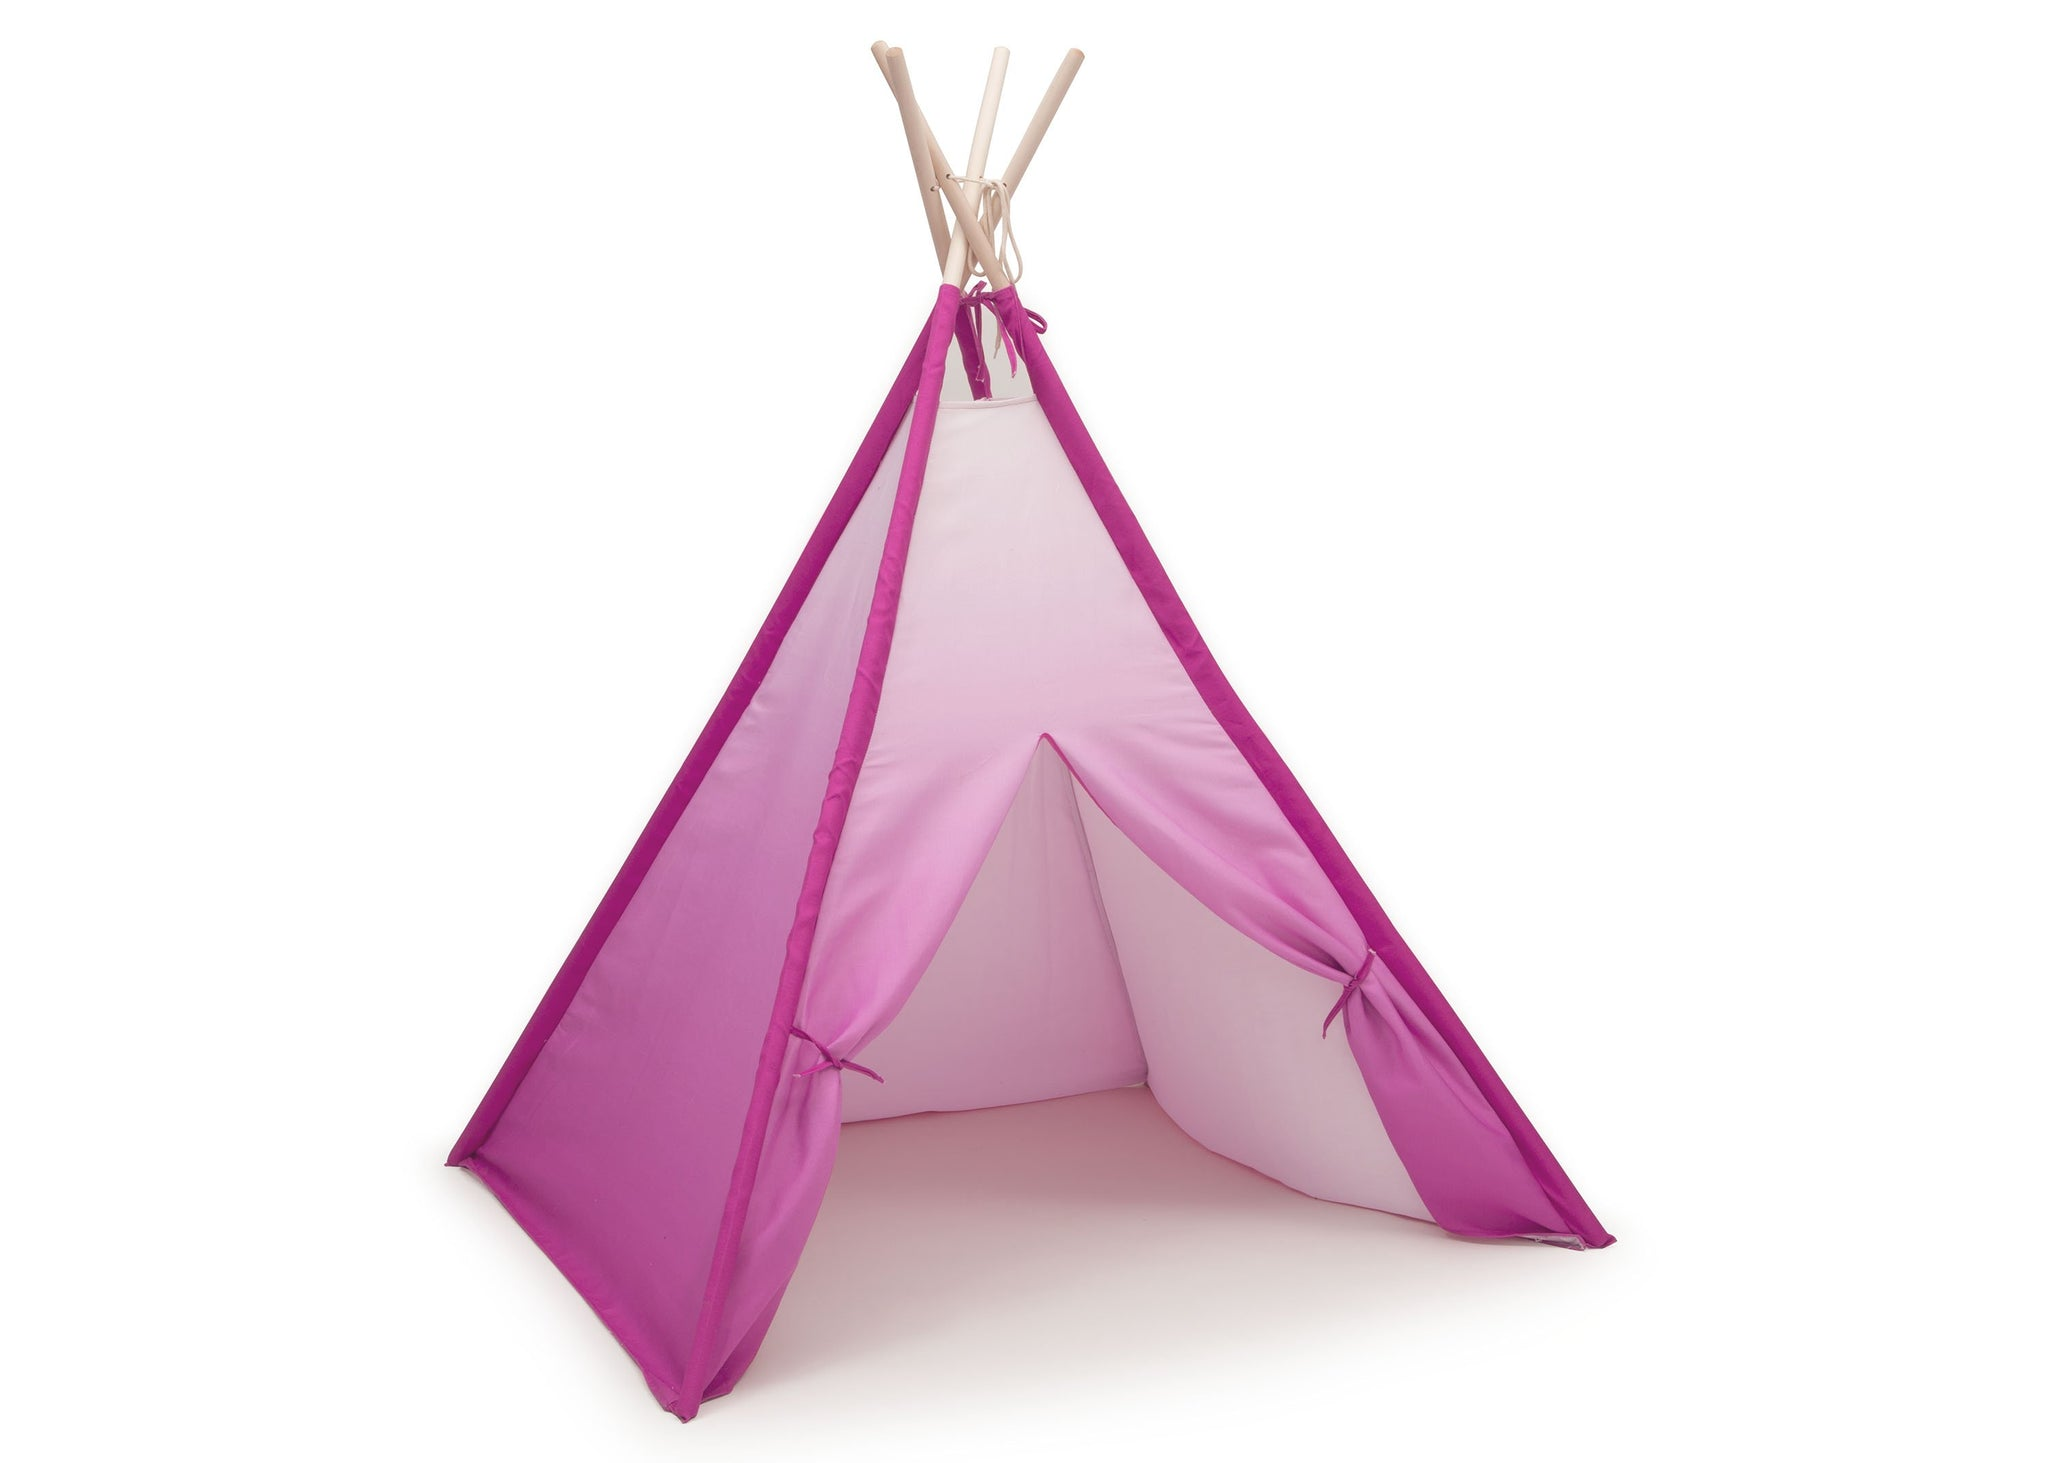 Delta Children Pink Ombre (999) Teepee Play Tent for Kids, Right Silo View